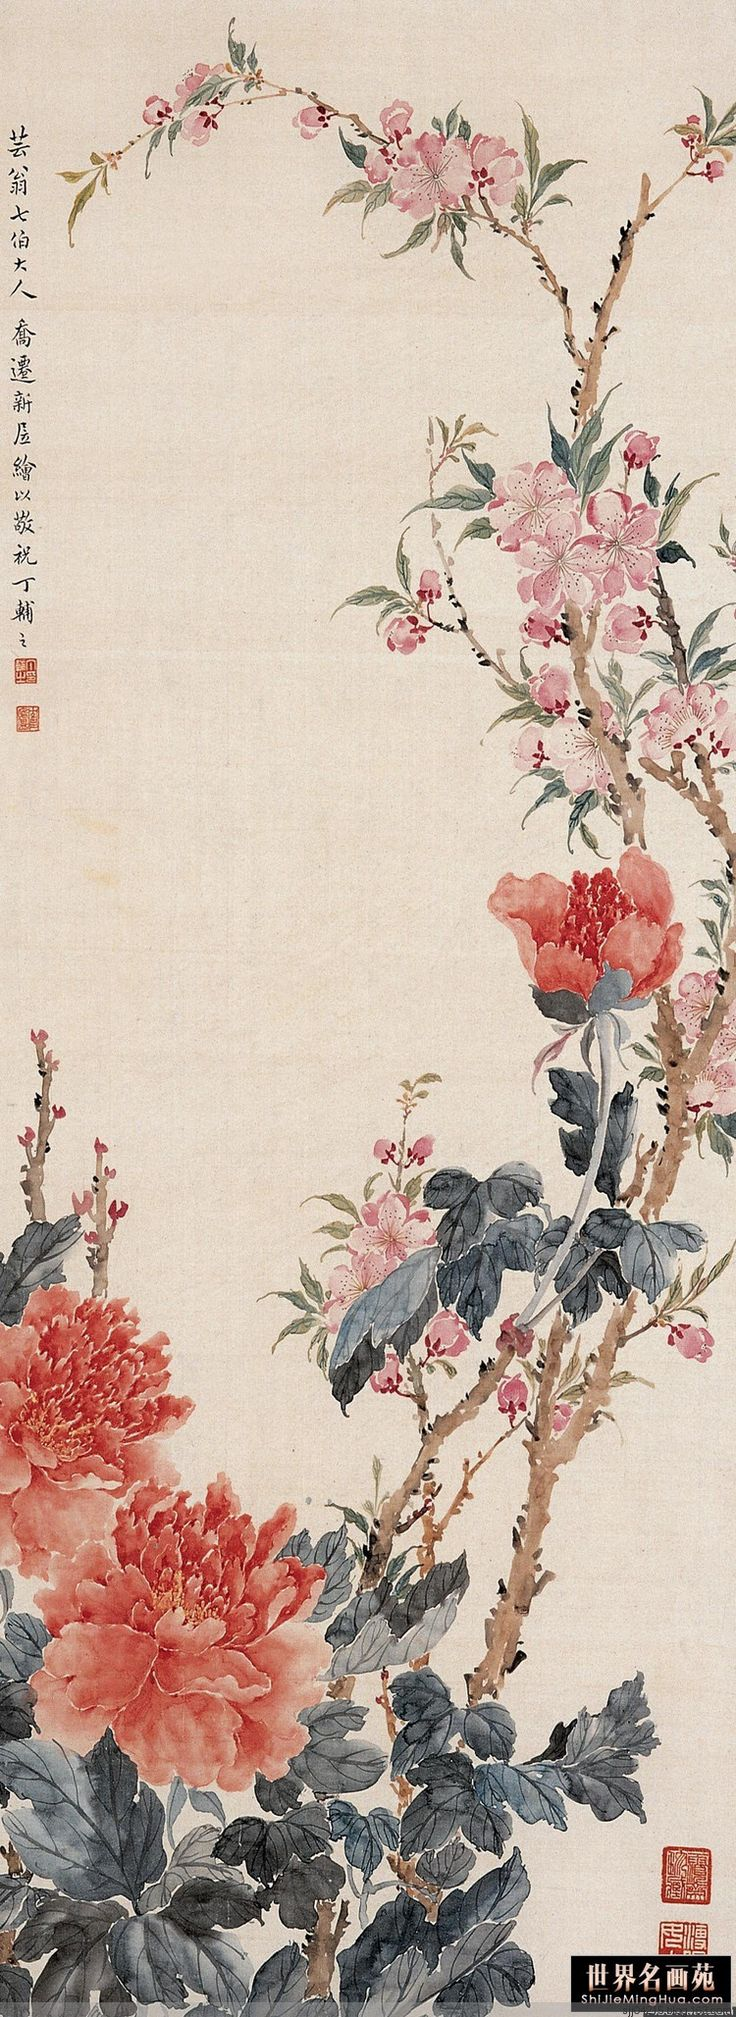 Chinese brush painting by Ding Fu Zhi. 丁辅之作品